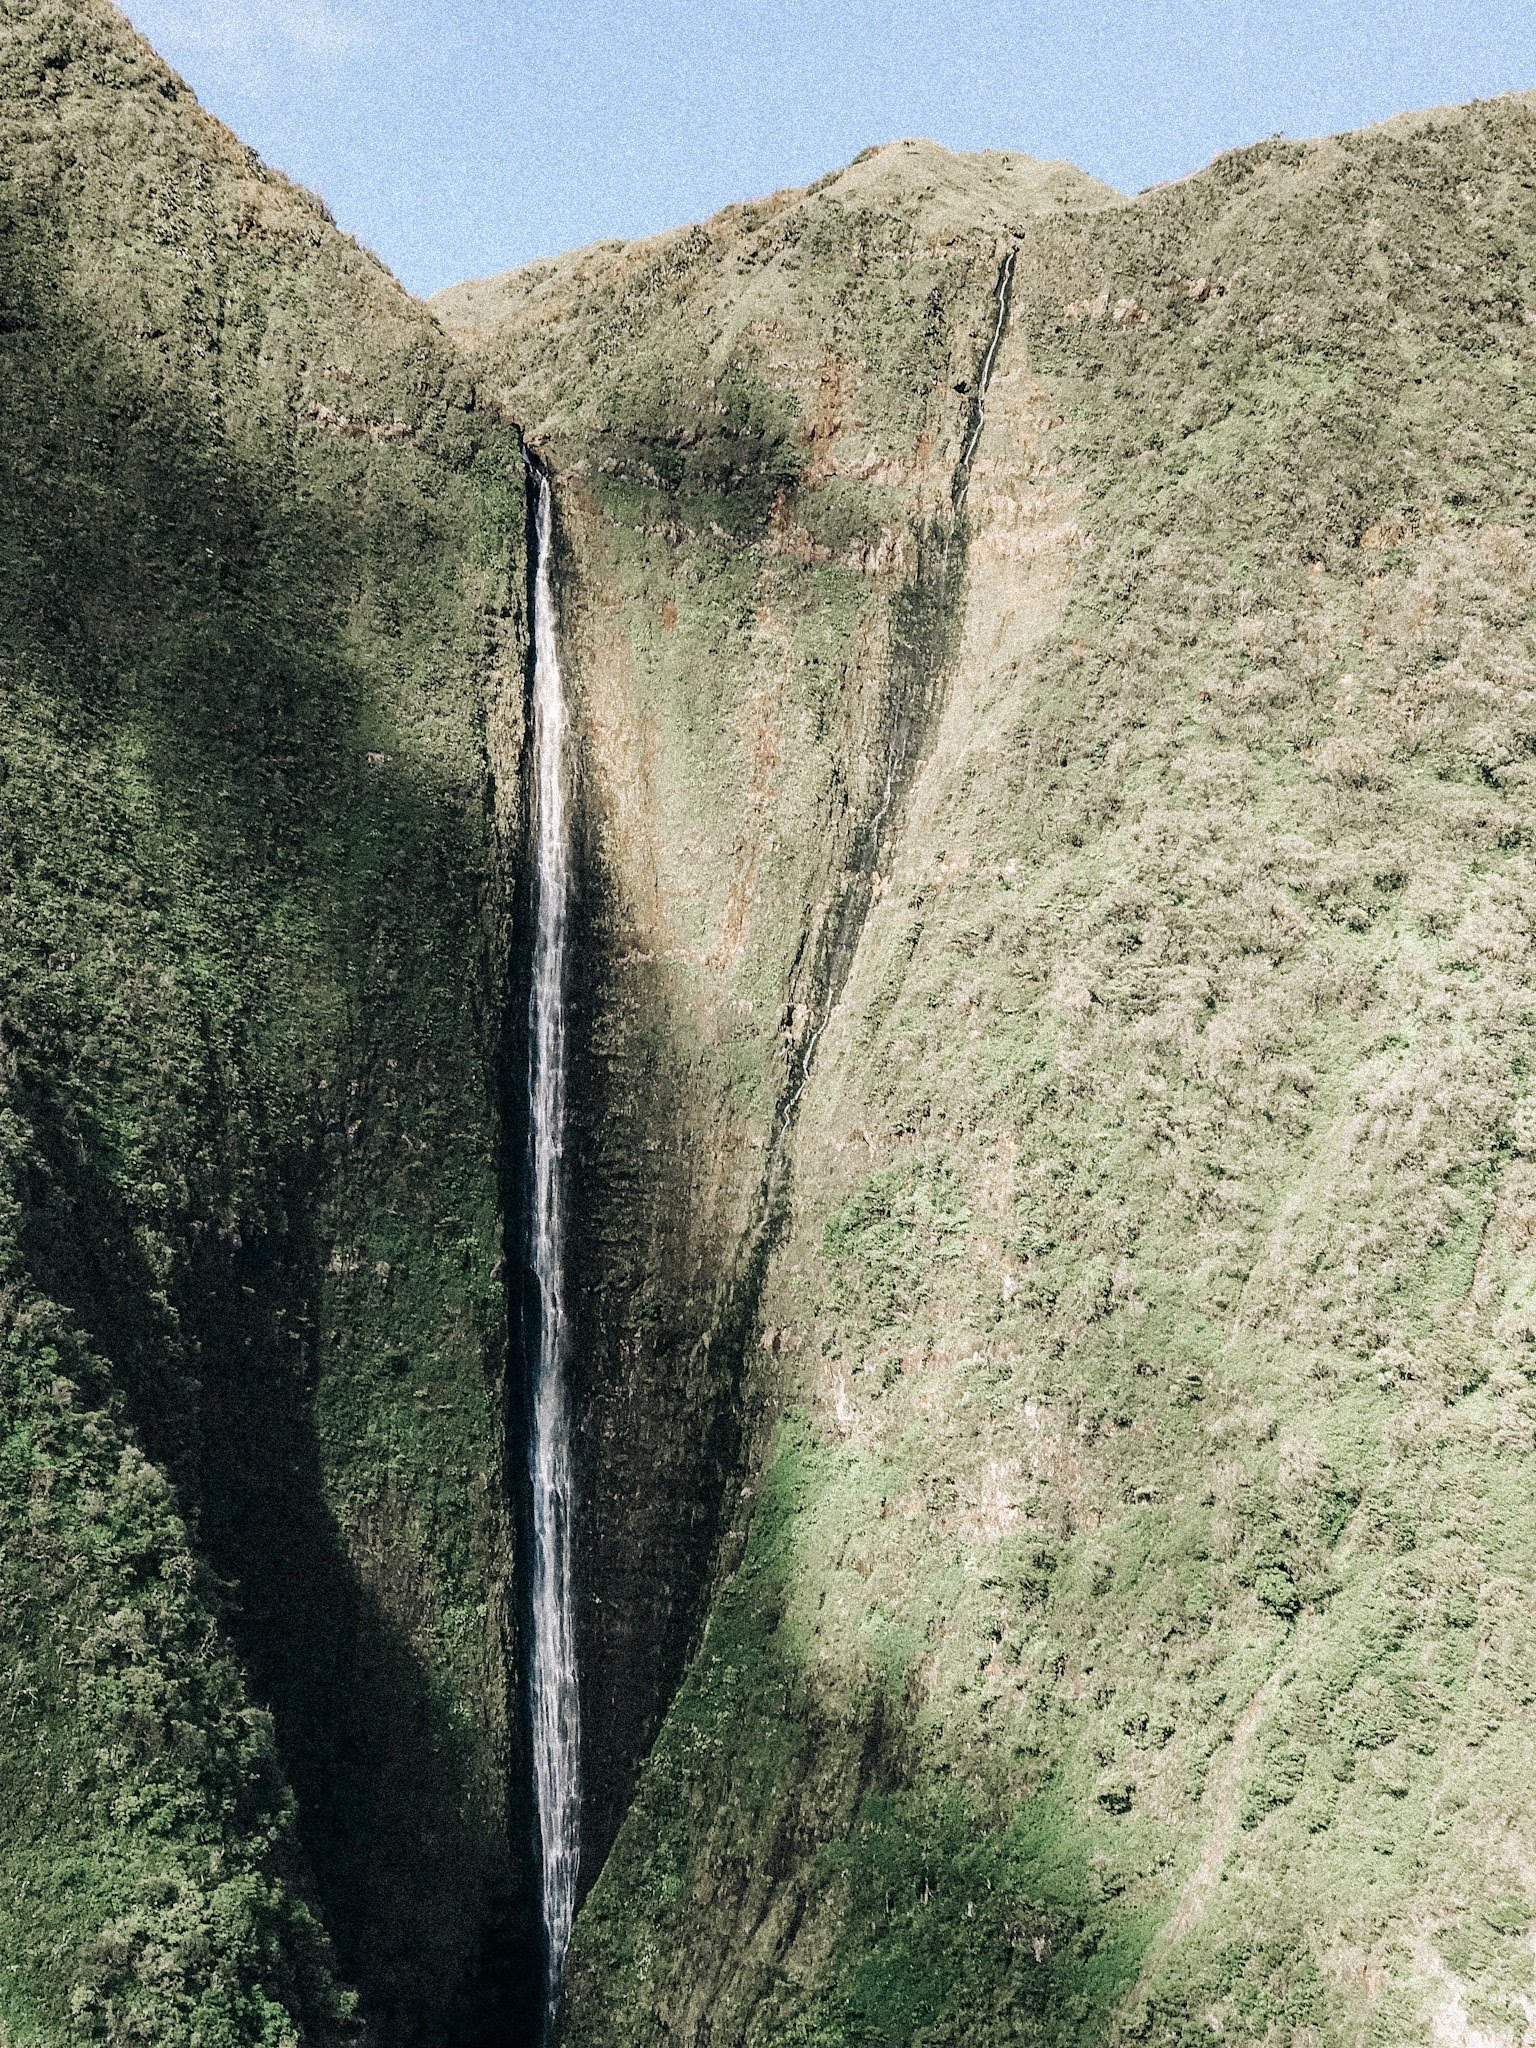 Helicopter tour Maui: Views of Molokai and the world's tallest sea cliffs